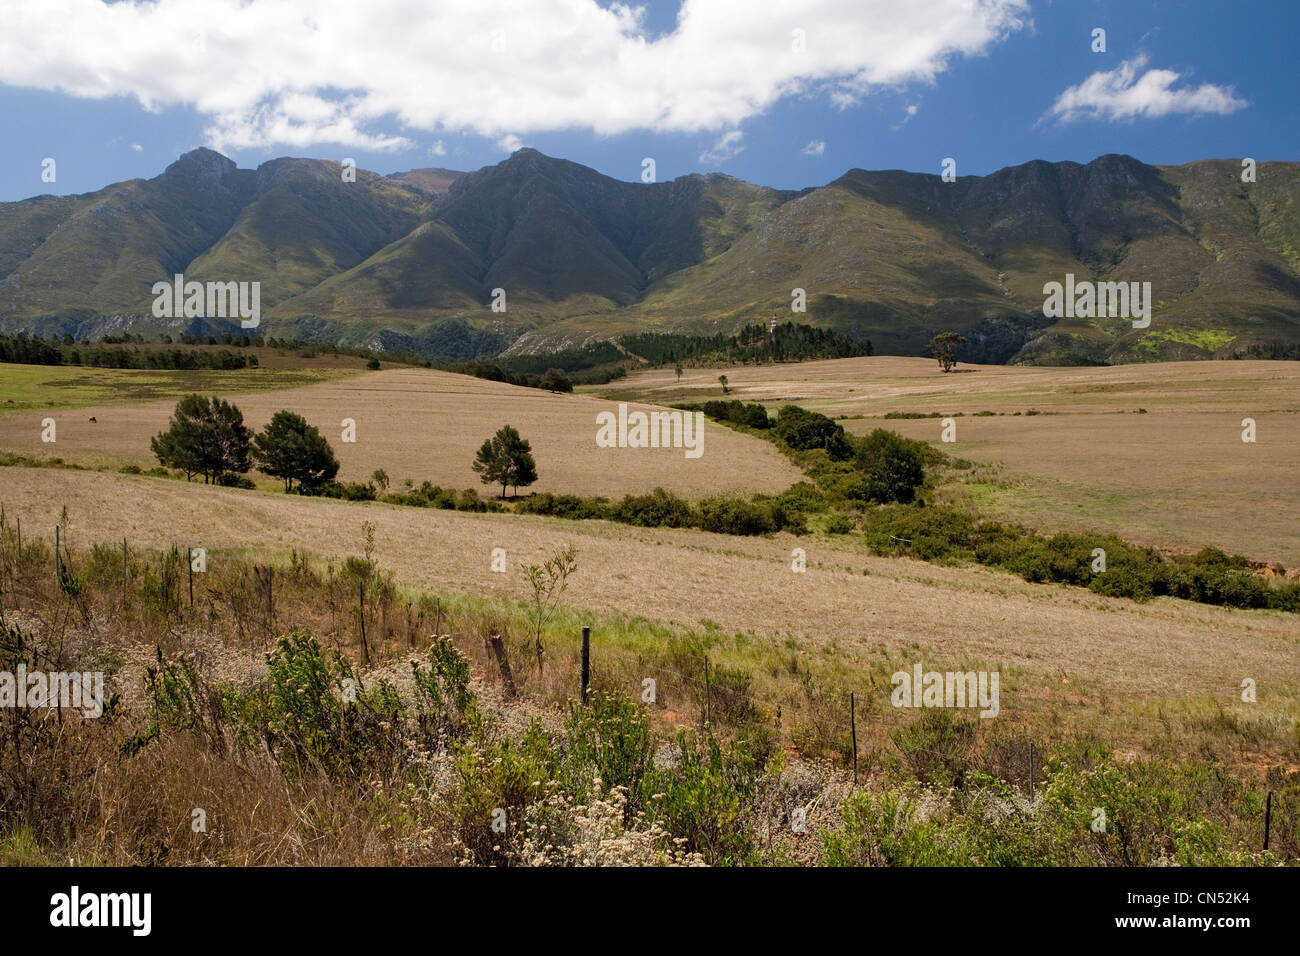 Klein (Little) karoo, N2 road / route near Caledon South Africa - Stock Image